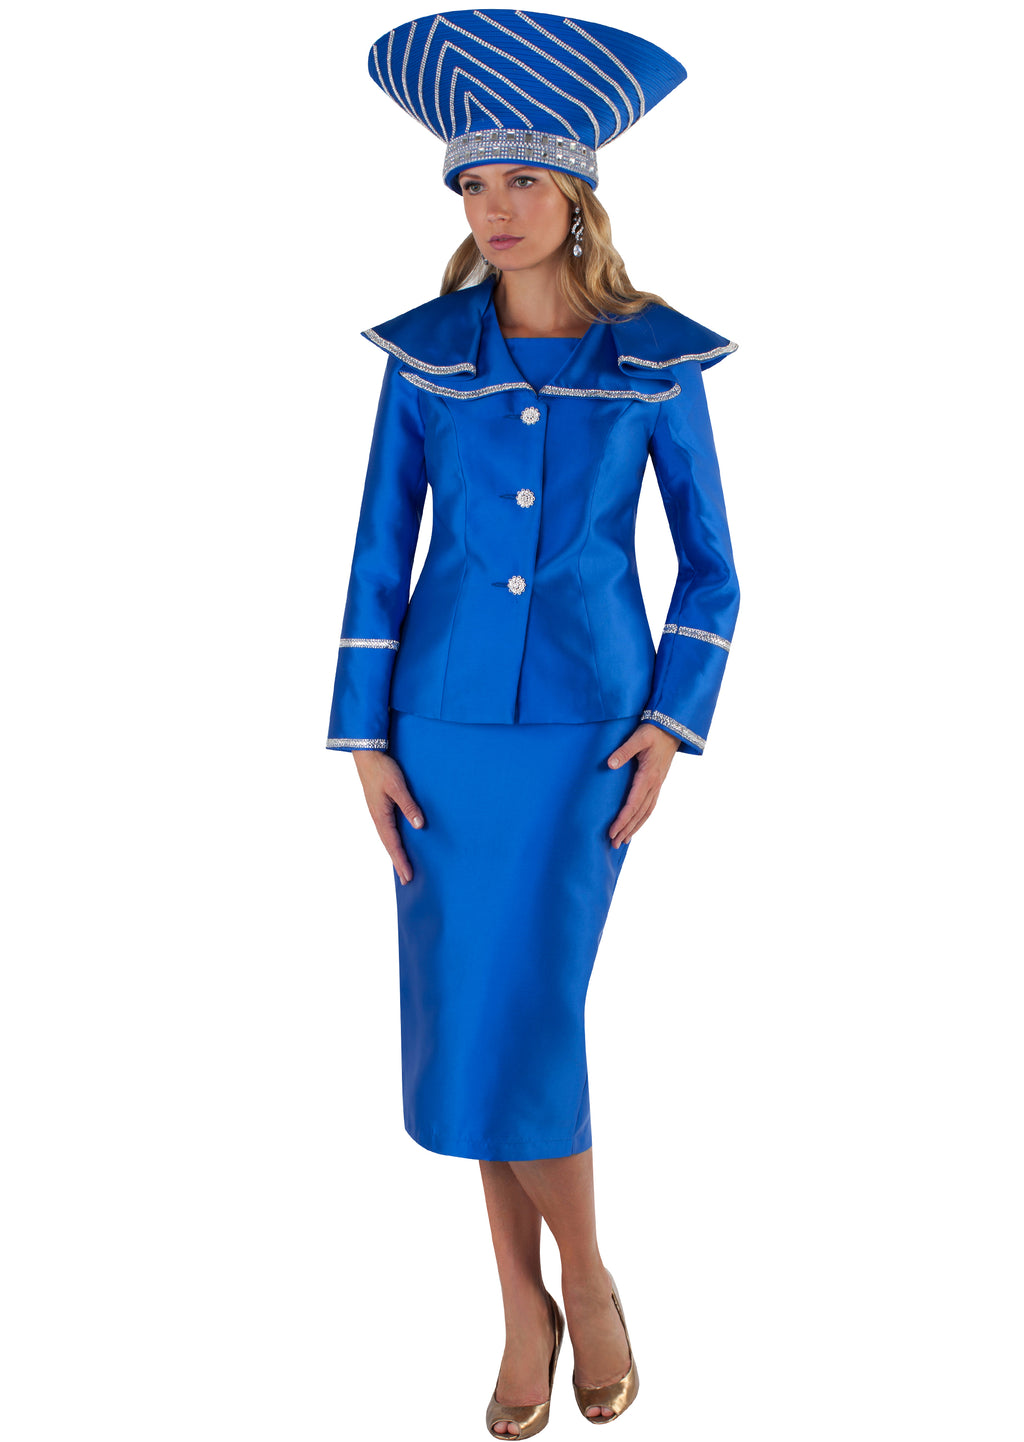 Tally Taylor Suit 4663